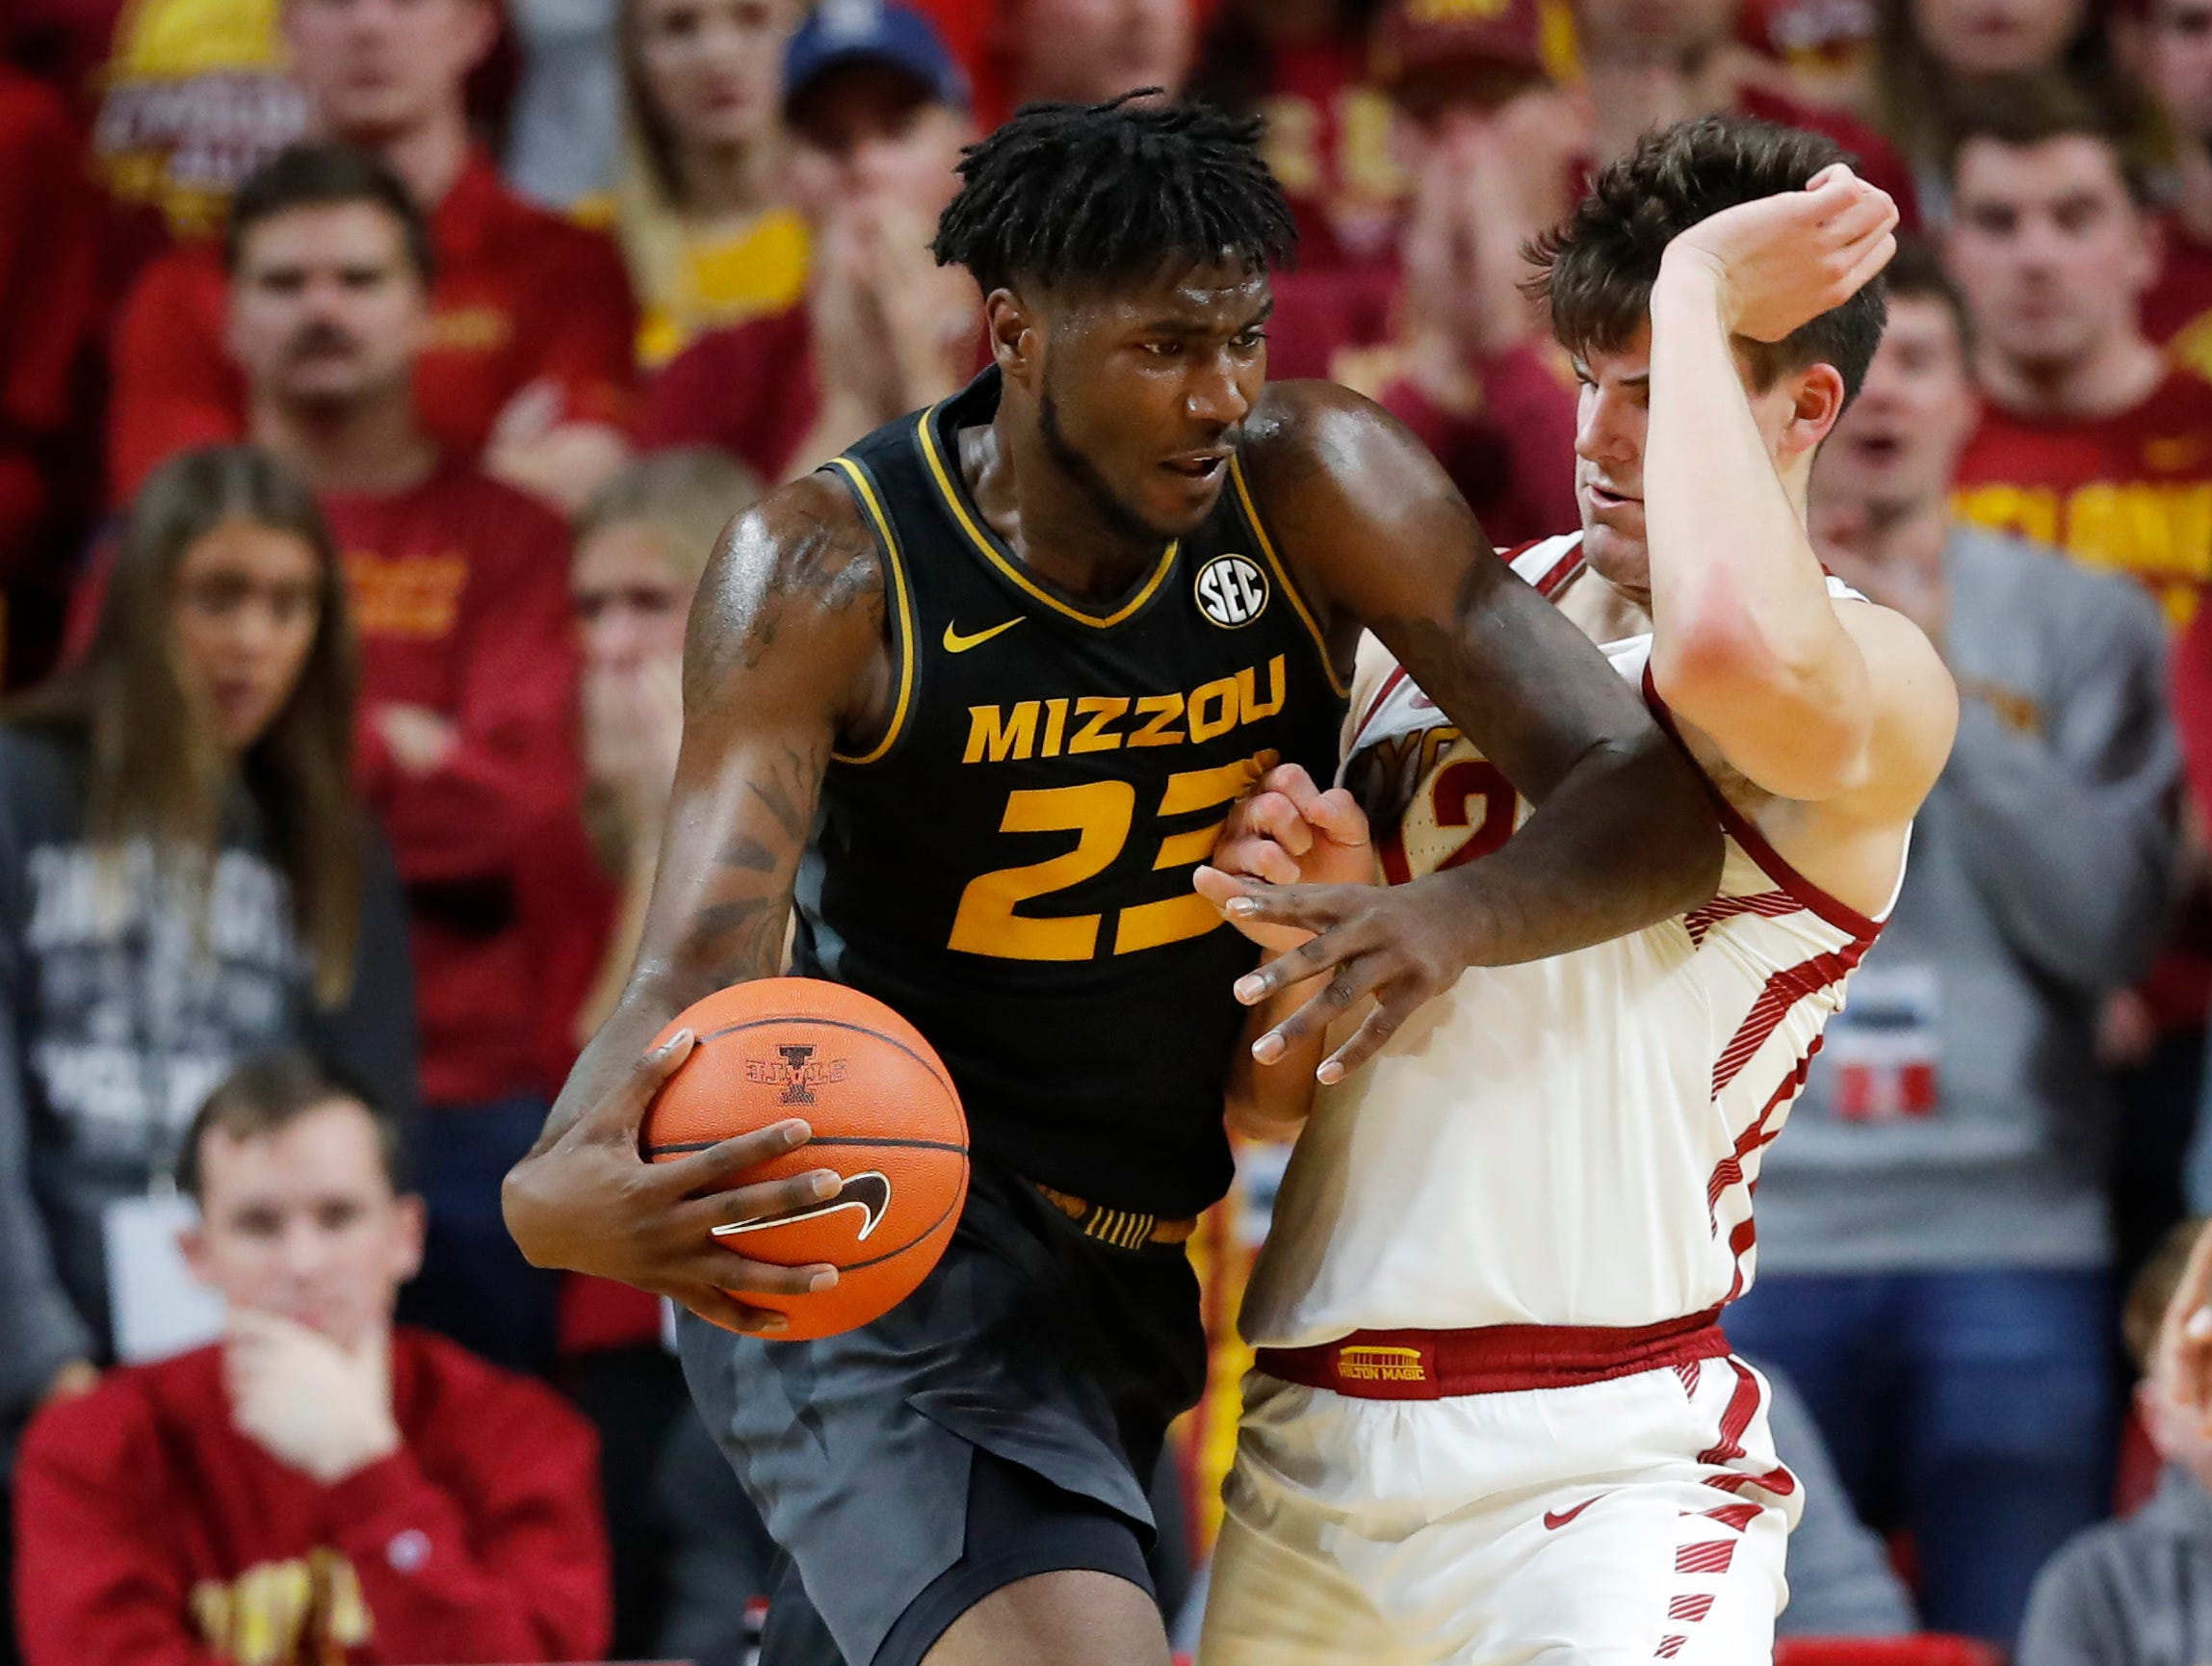 Missouri forward Jeremiah Tilmon (23) drives around Iowa State forward Michael Jacobson during the first half of an NCAA college basketball game, Friday, Nov. 9, 2018, in Ames, Iowa.